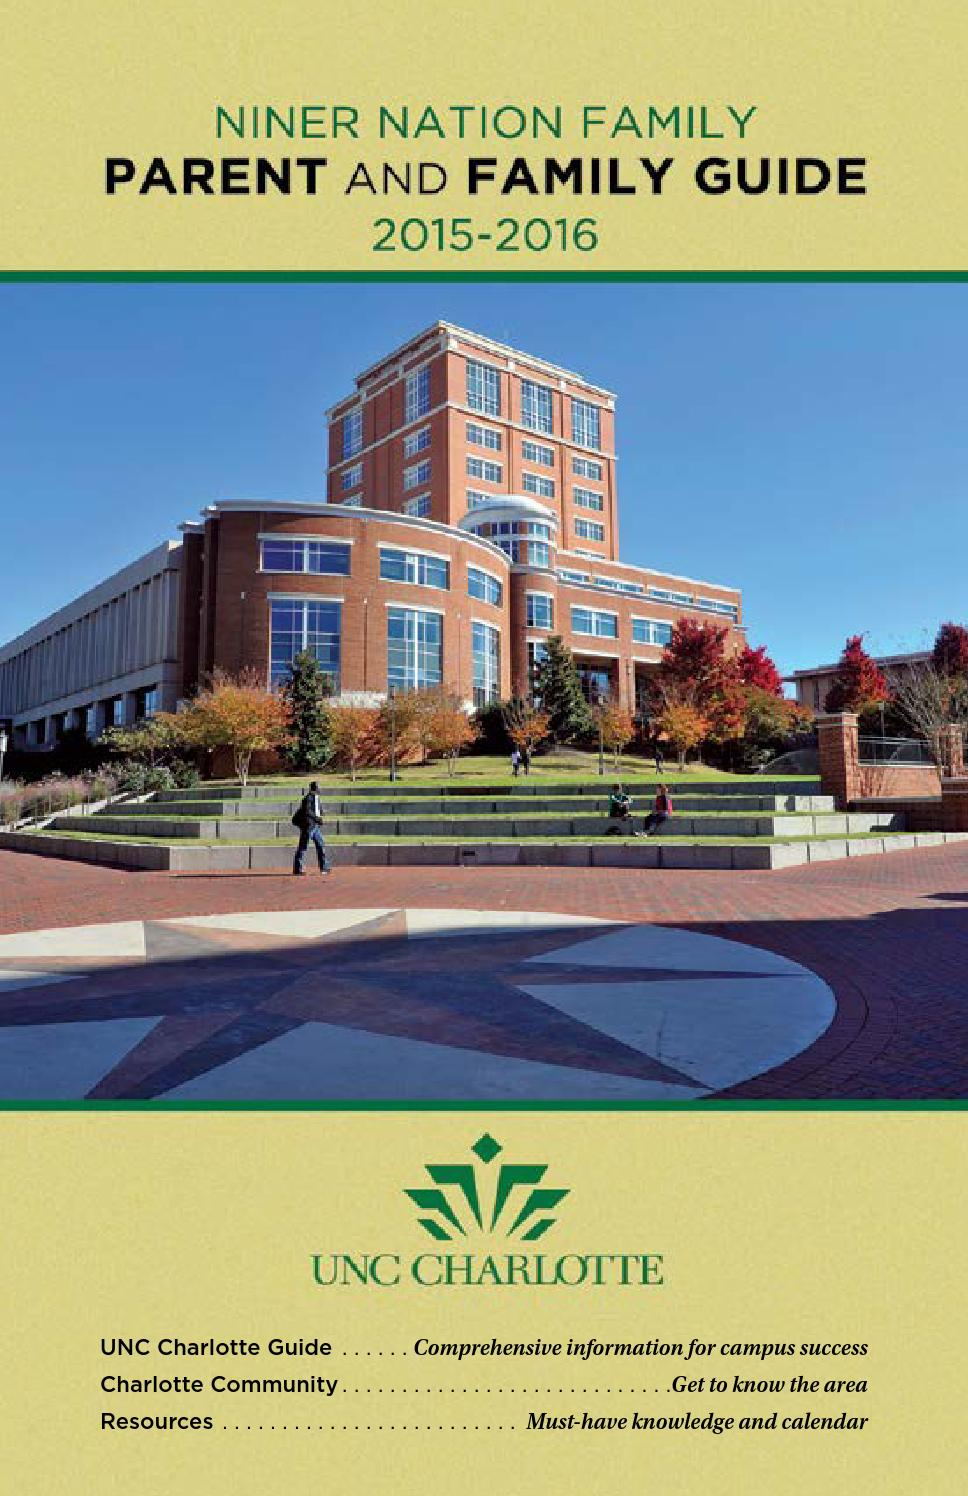 Uncc Calendar.University Of North Carolina At Charlotte 2015 2016 Guide For